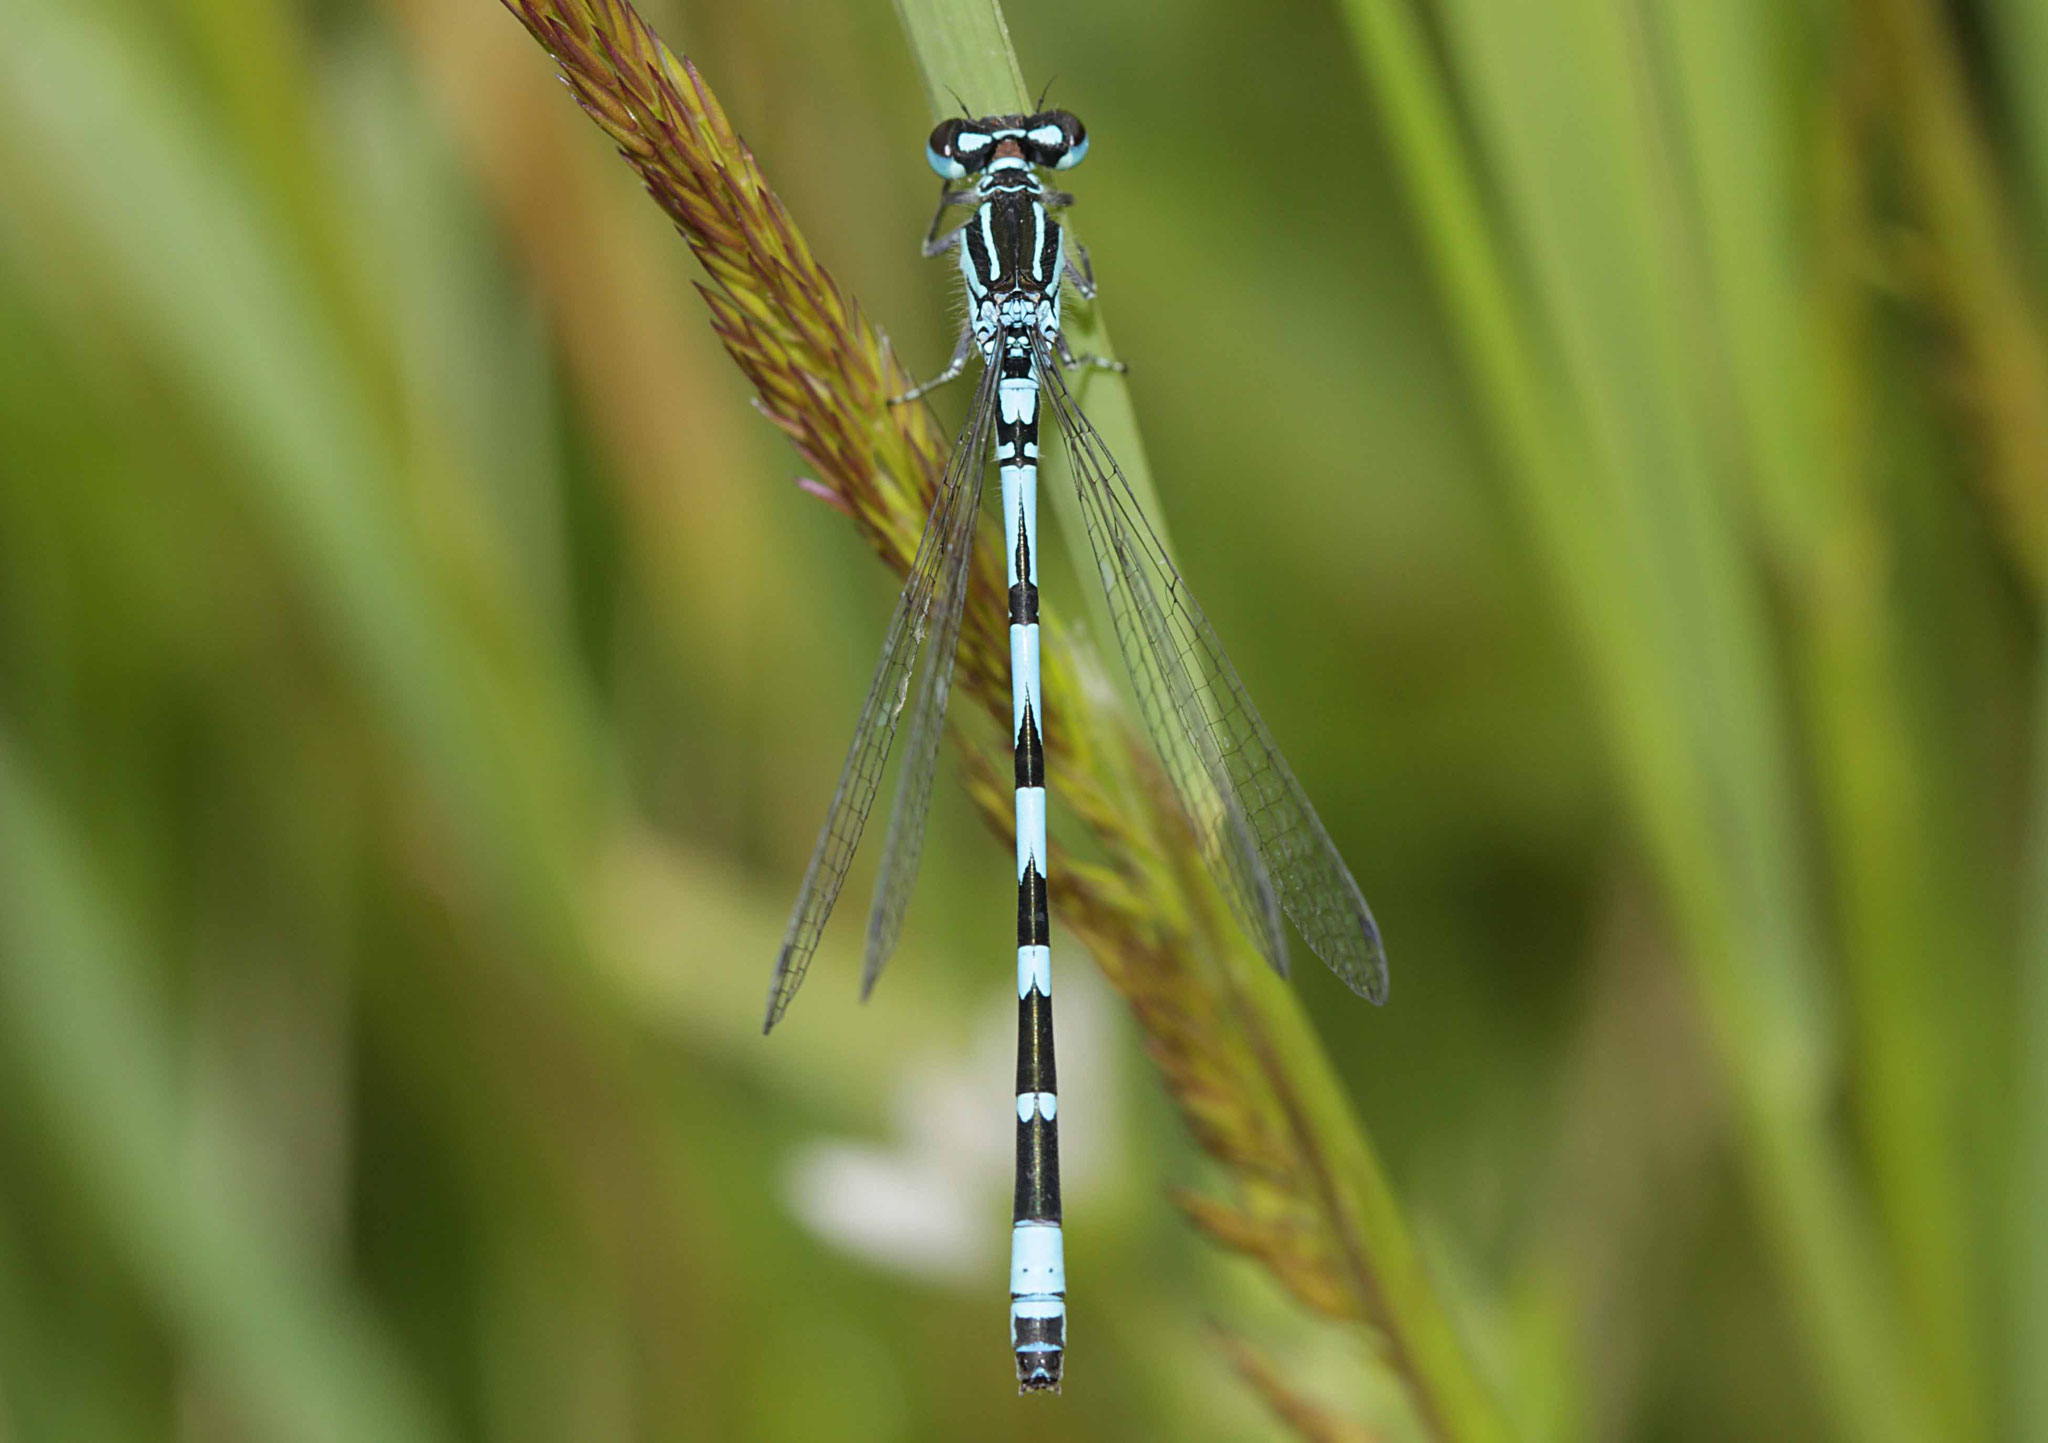 Vogel-Azurjungfer, Coenagrion ornatum, Männchen.